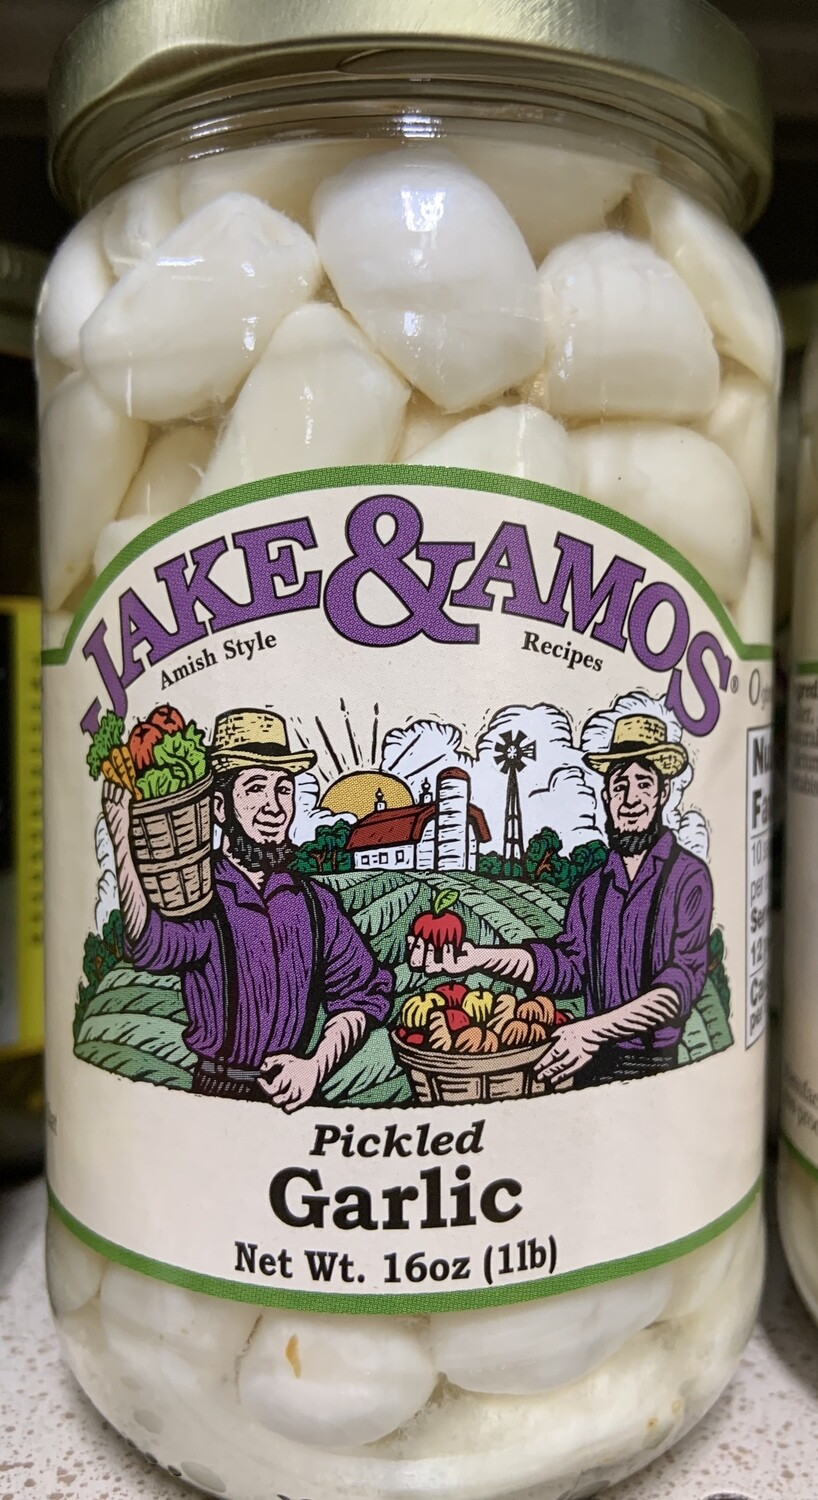 Jake and Amos Pickled Garlic 16 oz